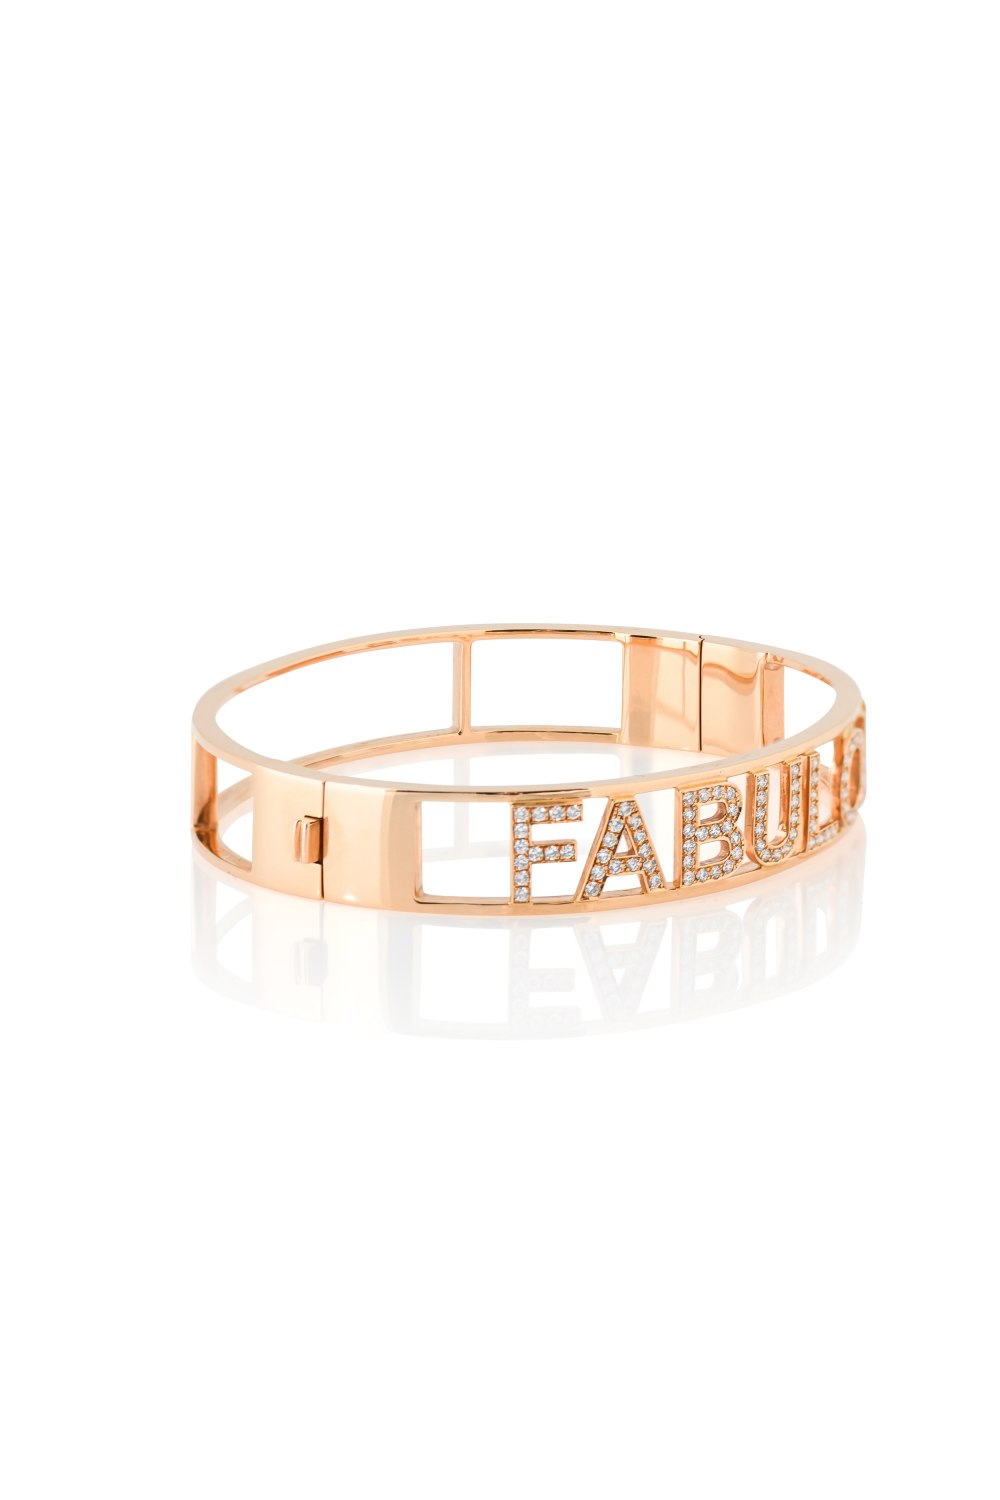 Kessaris-Fabulous Diamond Bangle Bracelet